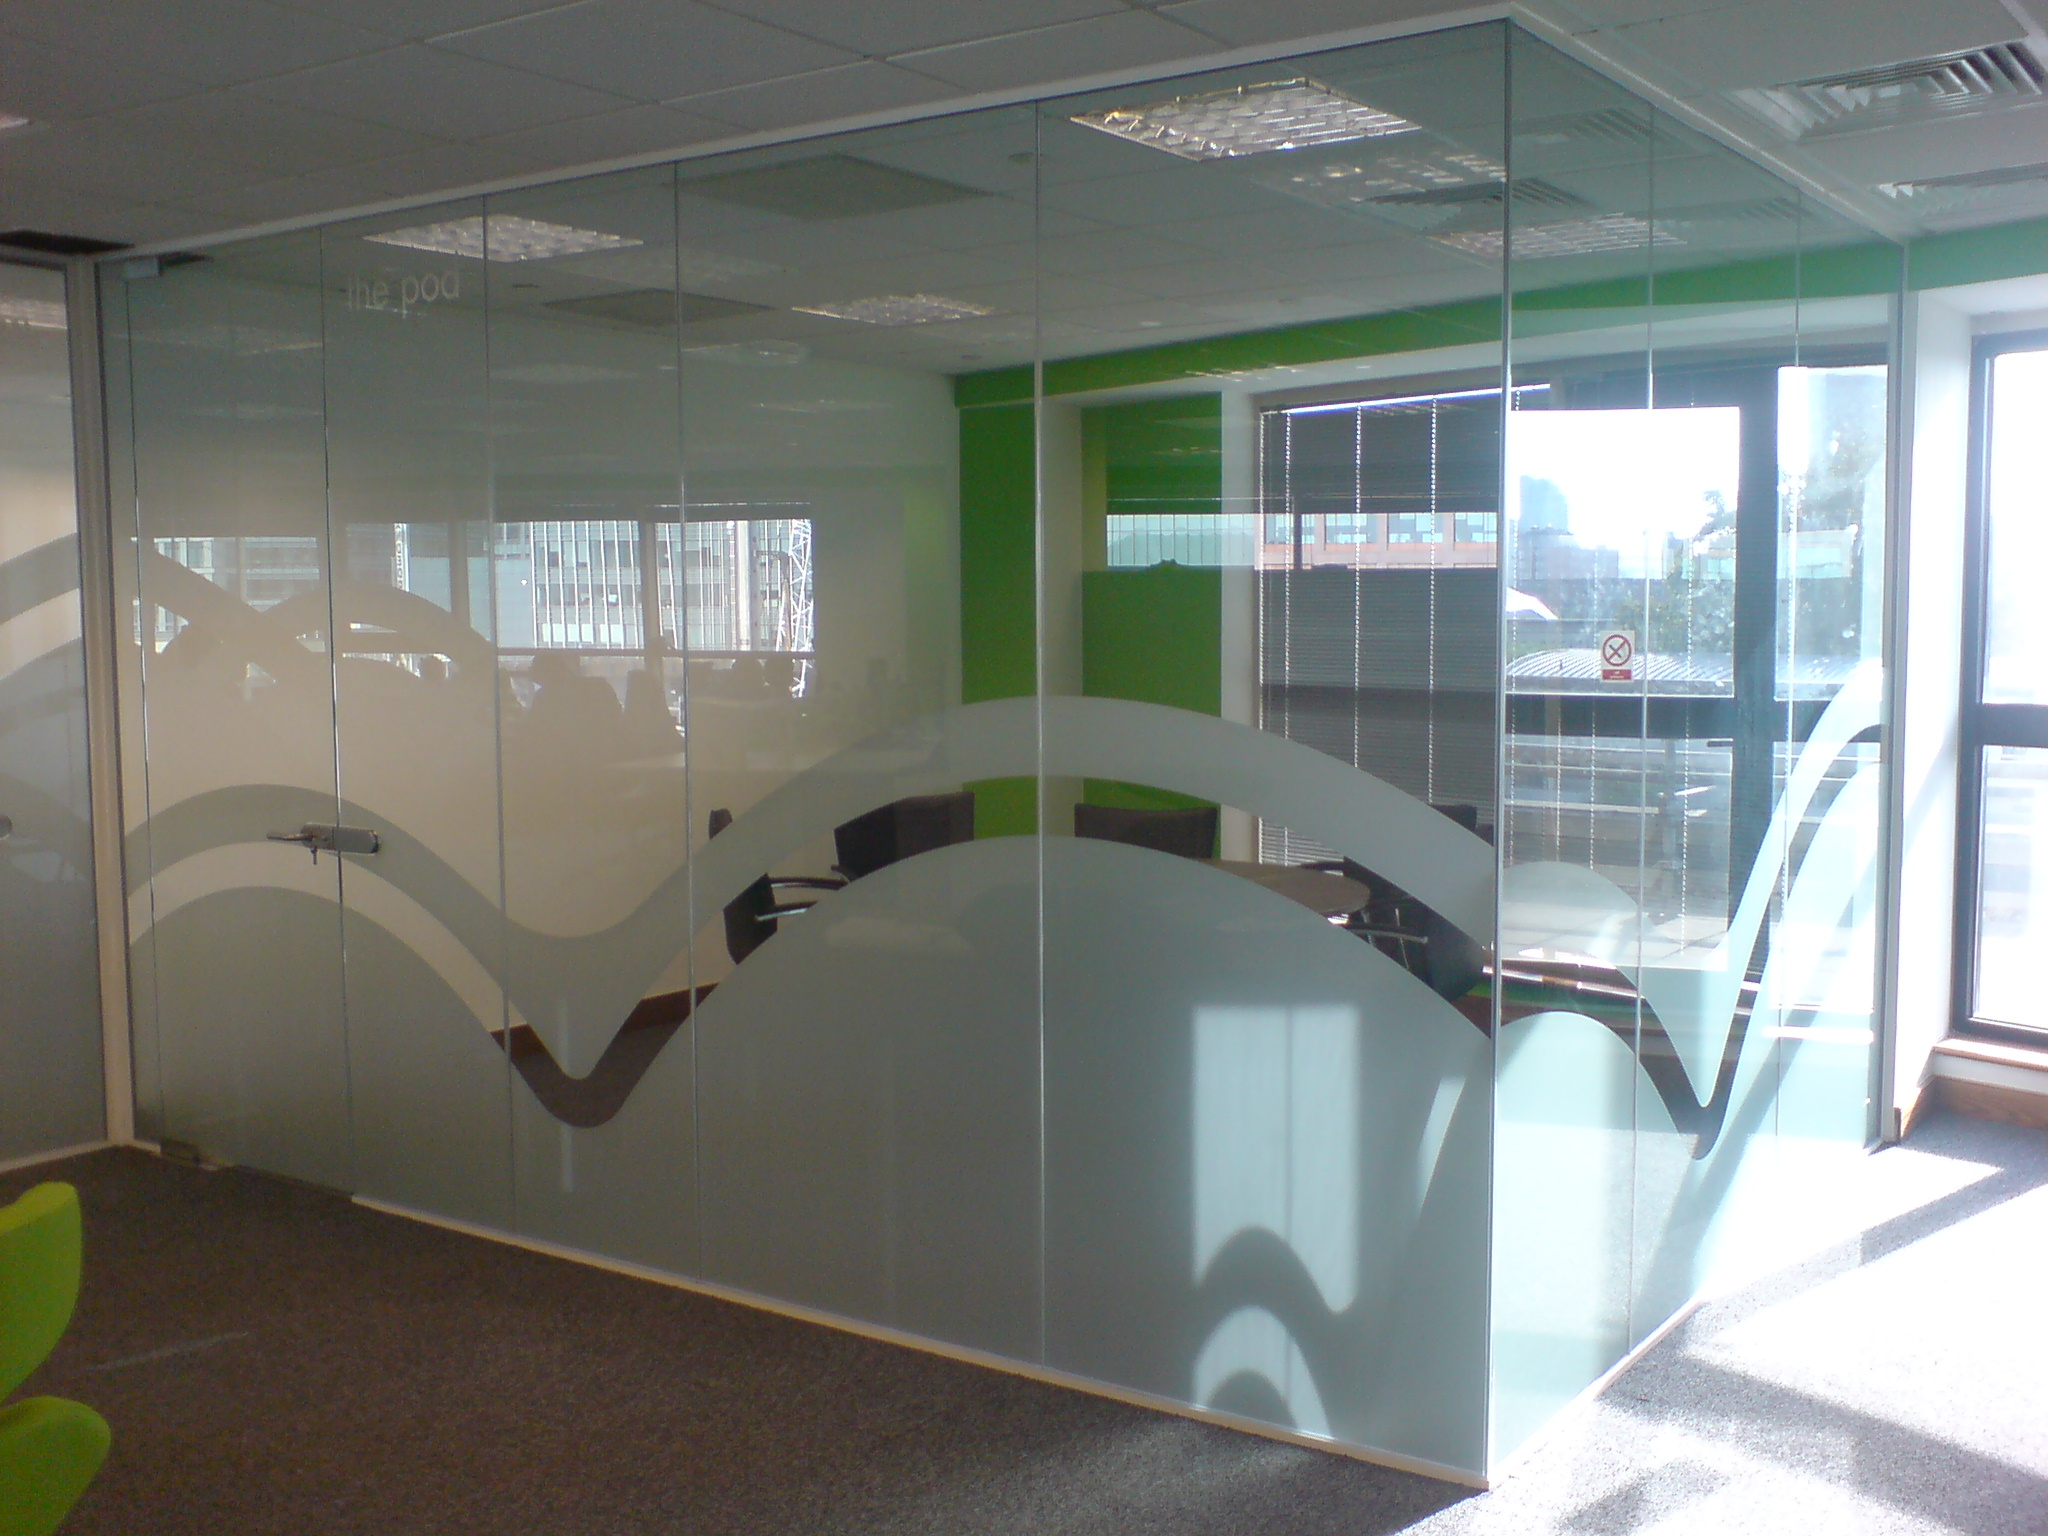 Frosted Vinyl Graphics Etched Logos Office Doors Windows Switzerland